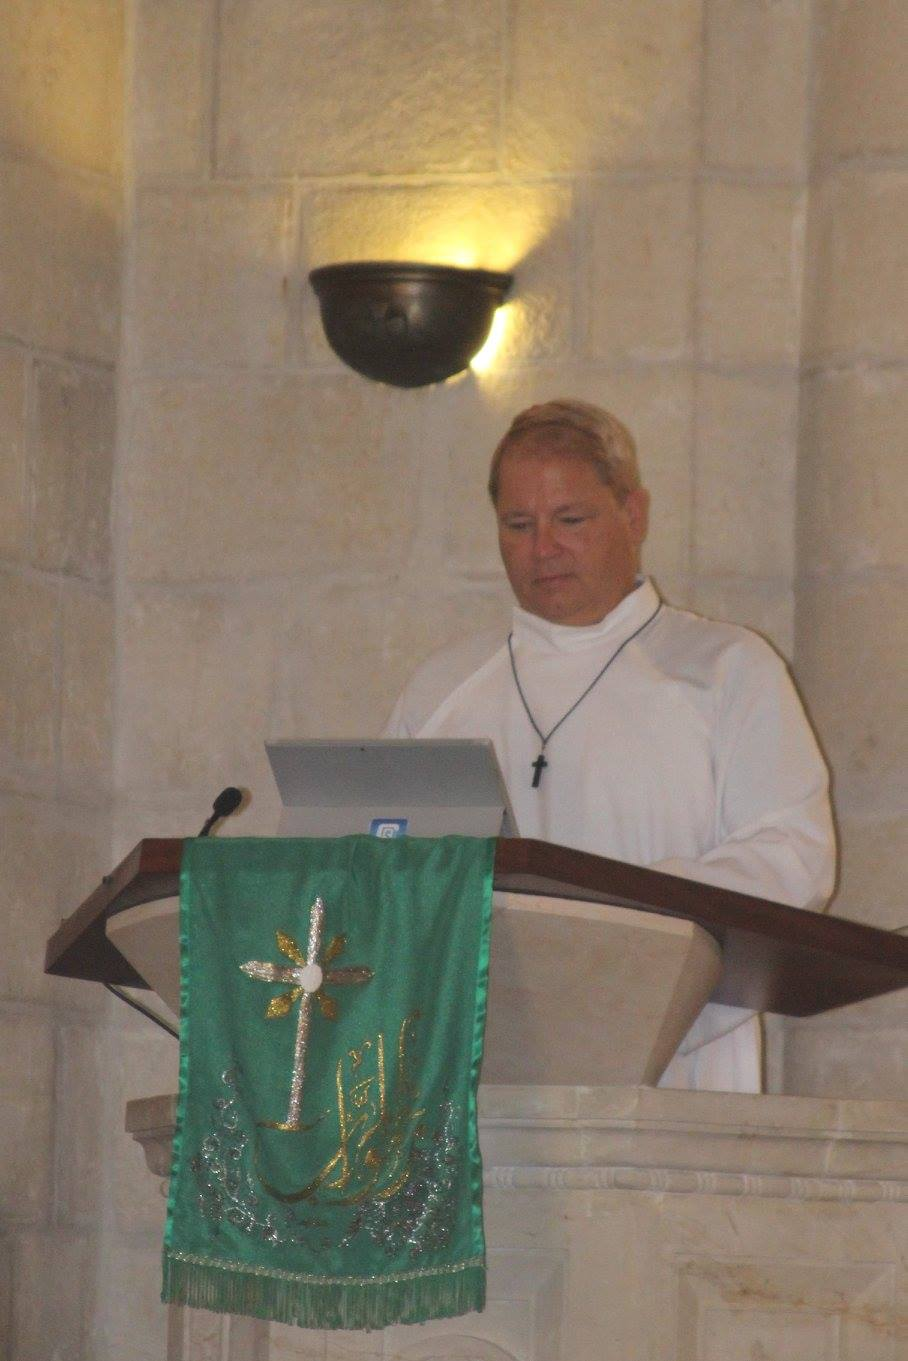 "J.R. preaching at the Christmas Lutheran Church in Bethlehem, Palestine.       Normal   0             false   false   false     EN-US   X-NONE   AR-SA                                                                                                                                                                                                                                                                                                                                                                                                                                                                                                                                                                                                                                                                                                                                                                                                                                                               /* Style Definitions */  table.MsoNormalTable 	{mso-style-name:""Table Normal""; 	mso-tstyle-rowband-size:0; 	mso-tstyle-colband-size:0; 	mso-style-noshow:yes; 	mso-style-priority:99; 	mso-style-parent:""""; 	mso-padding-alt:0in 5.4pt 0in 5.4pt; 	mso-para-margin-top:0in; 	mso-para-margin-right:0in; 	mso-para-margin-bottom:8.0pt; 	mso-para-margin-left:0in; 	line-height:107%; 	mso-pagination:widow-orphan; 	font-size:11.0pt; 	font-family:""Calibri"",sans-serif; 	mso-ascii-font-family:Calibri; 	mso-ascii-theme-font:minor-latin; 	mso-hansi-font-family:Calibri; 	mso-hansi-theme-font:minor-latin;}"